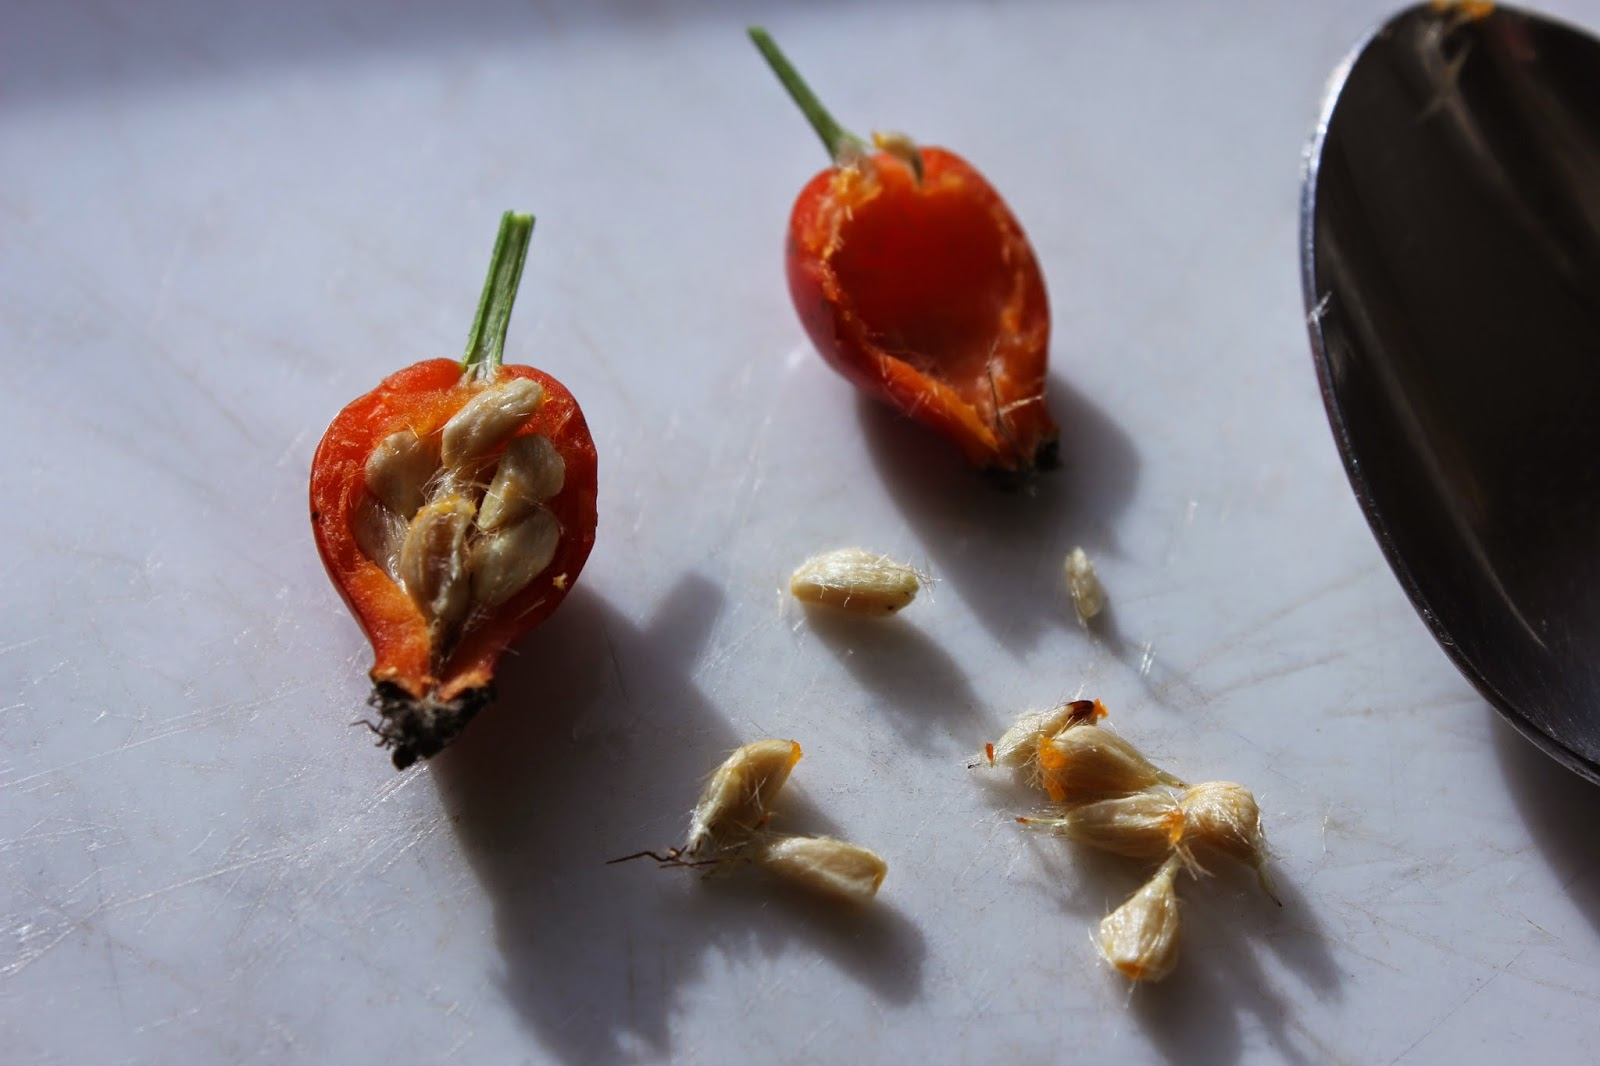 How to remove rose hip seeds